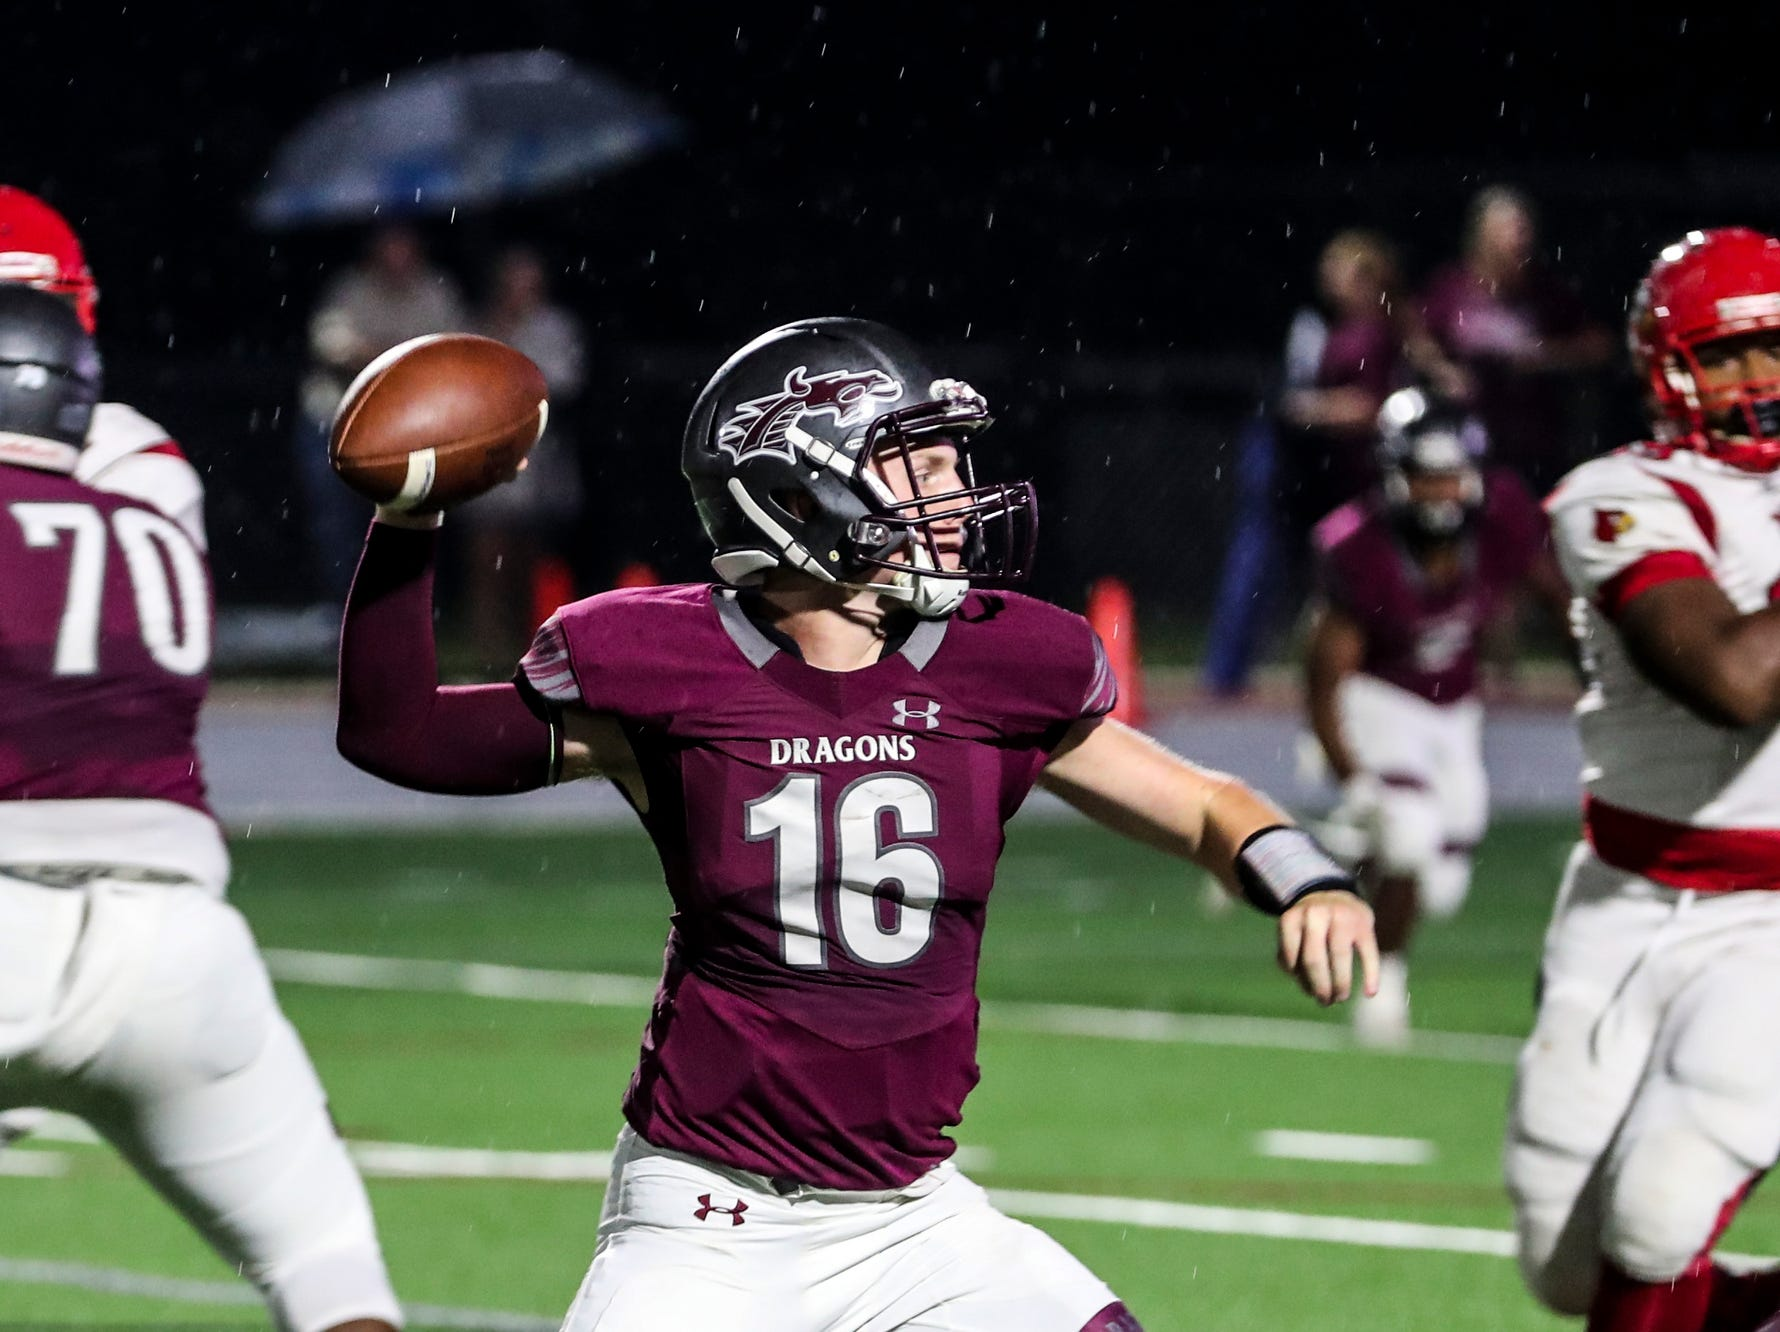 September 21 2018 - Collierville's Mitch Austin throws the ball during Friday night's game versus Wooddale at Collierville High School.